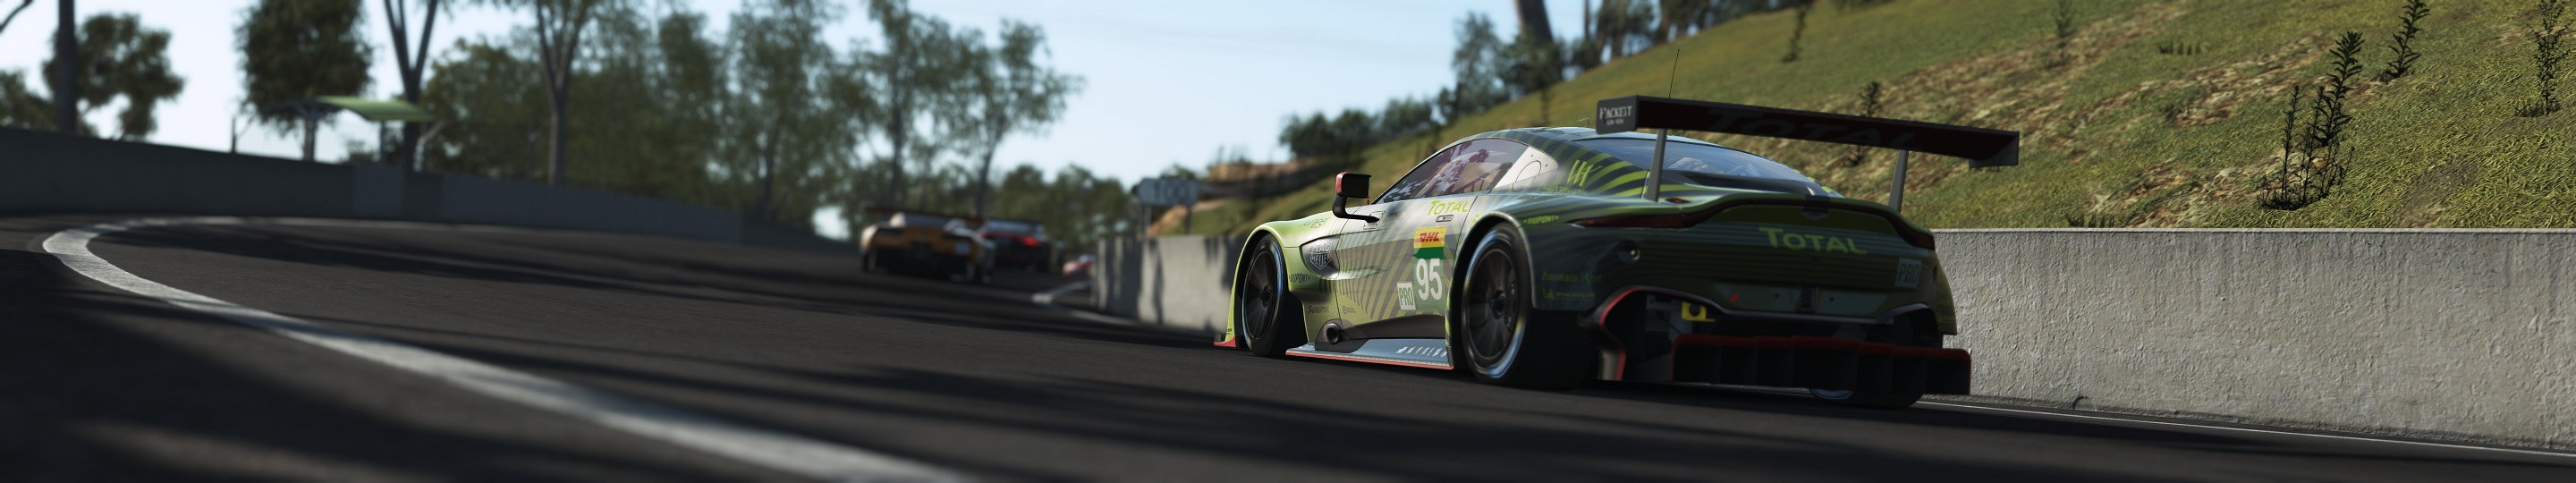 5 rF2 ASTON GTE at BATHURST copy.jpg